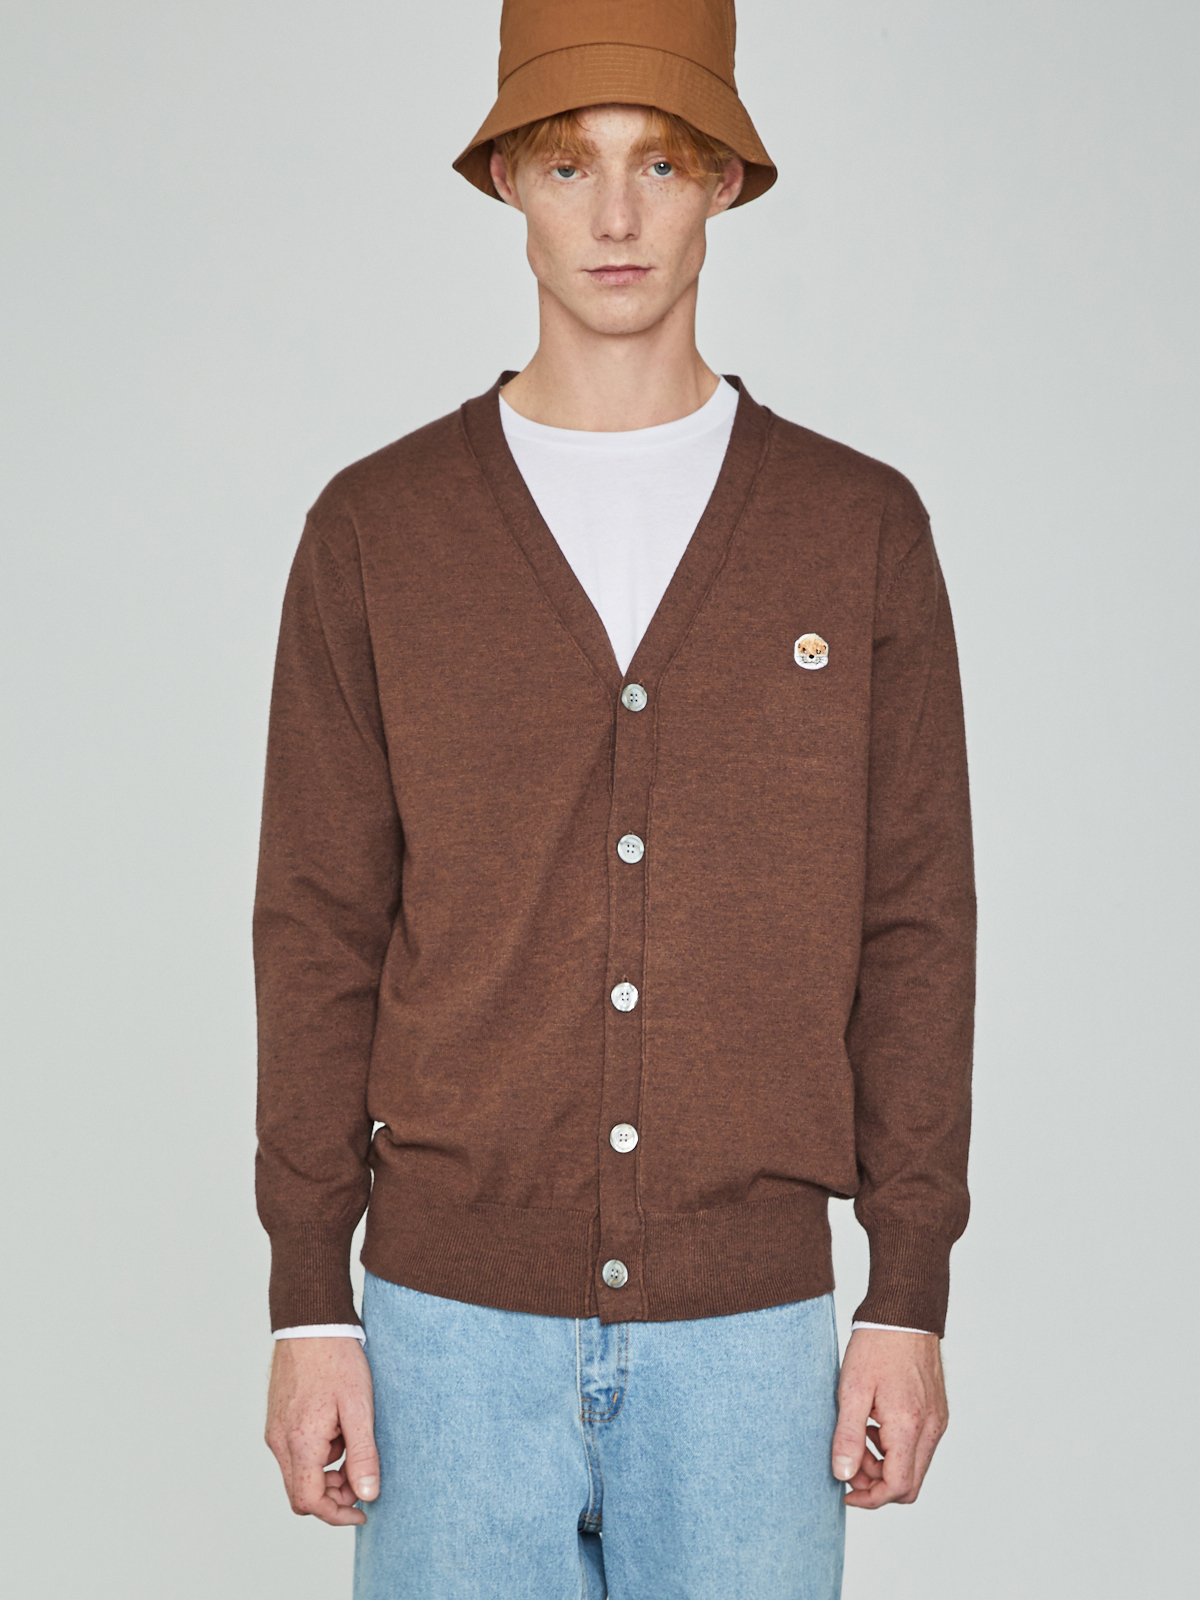 Lazyotter Cashmere Cardigan Brown